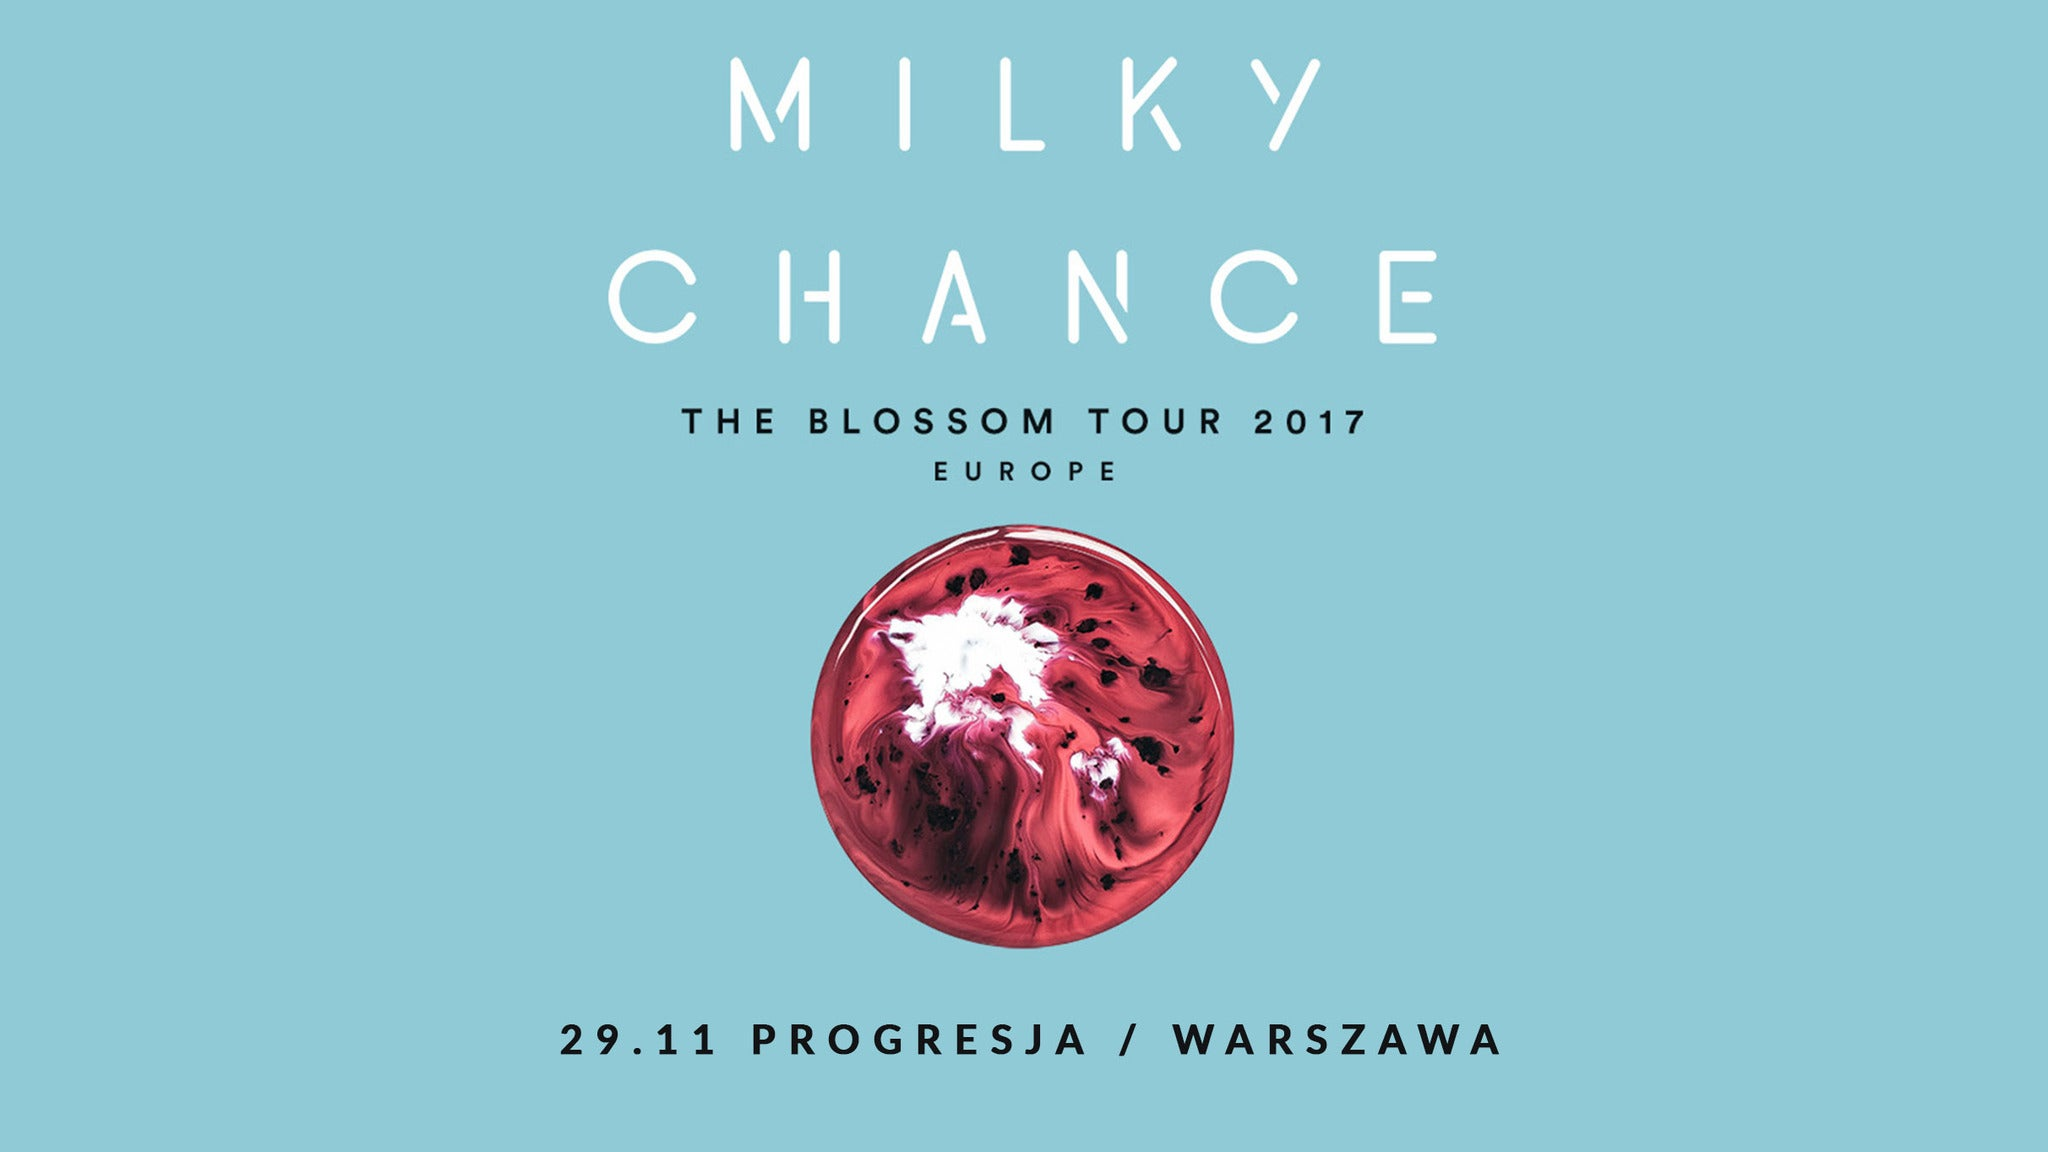 MILKY CHANCE: BLOSSOM TOUR at State Theatre